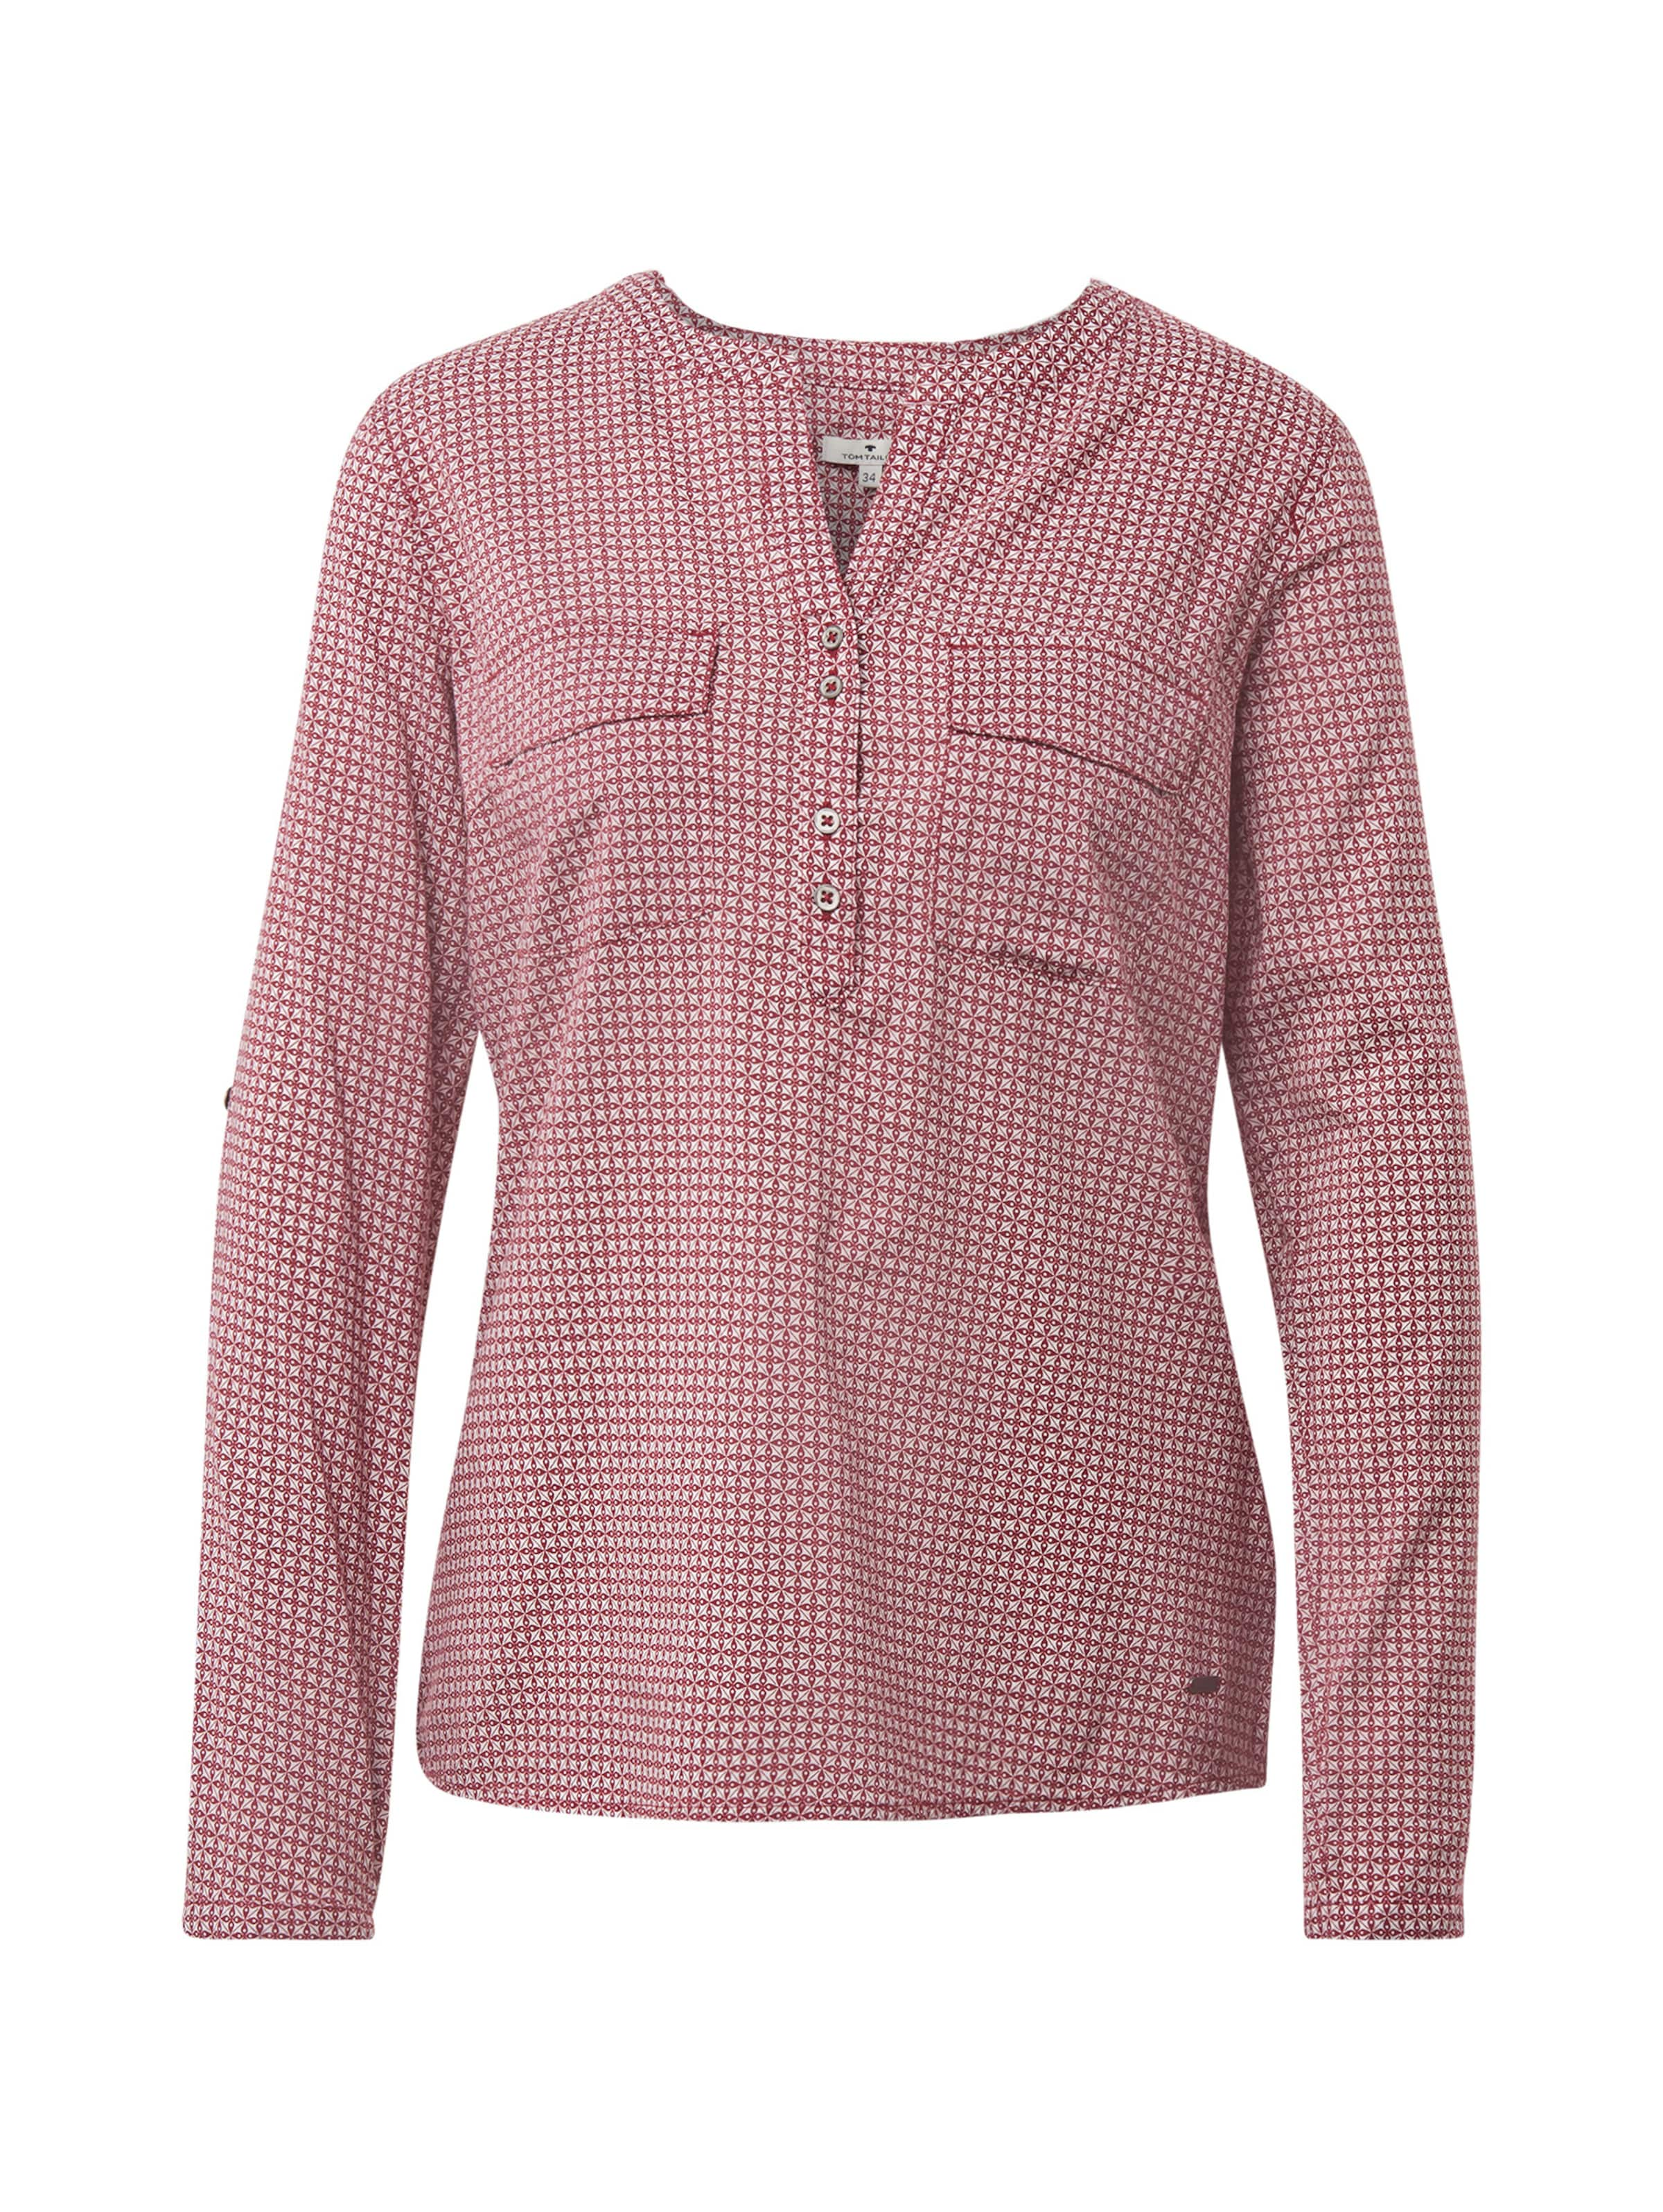 Bluse Tom In Tom Rot Tom Tailor Bluse In Rot Tailor pSMVUz